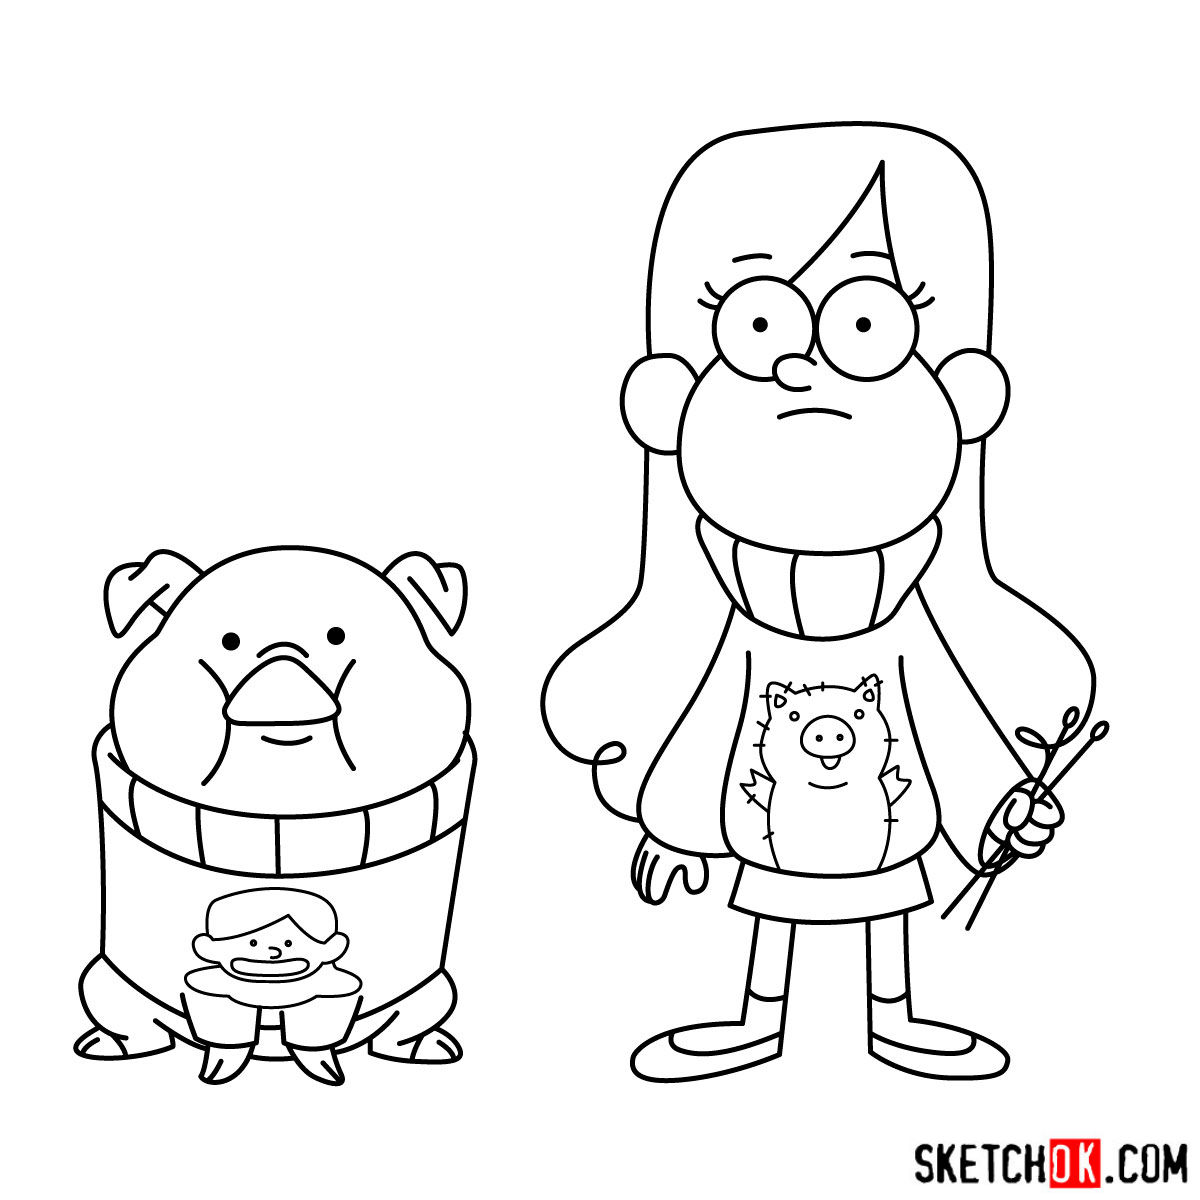 How to draw Mabel Pines with Pig - step 18